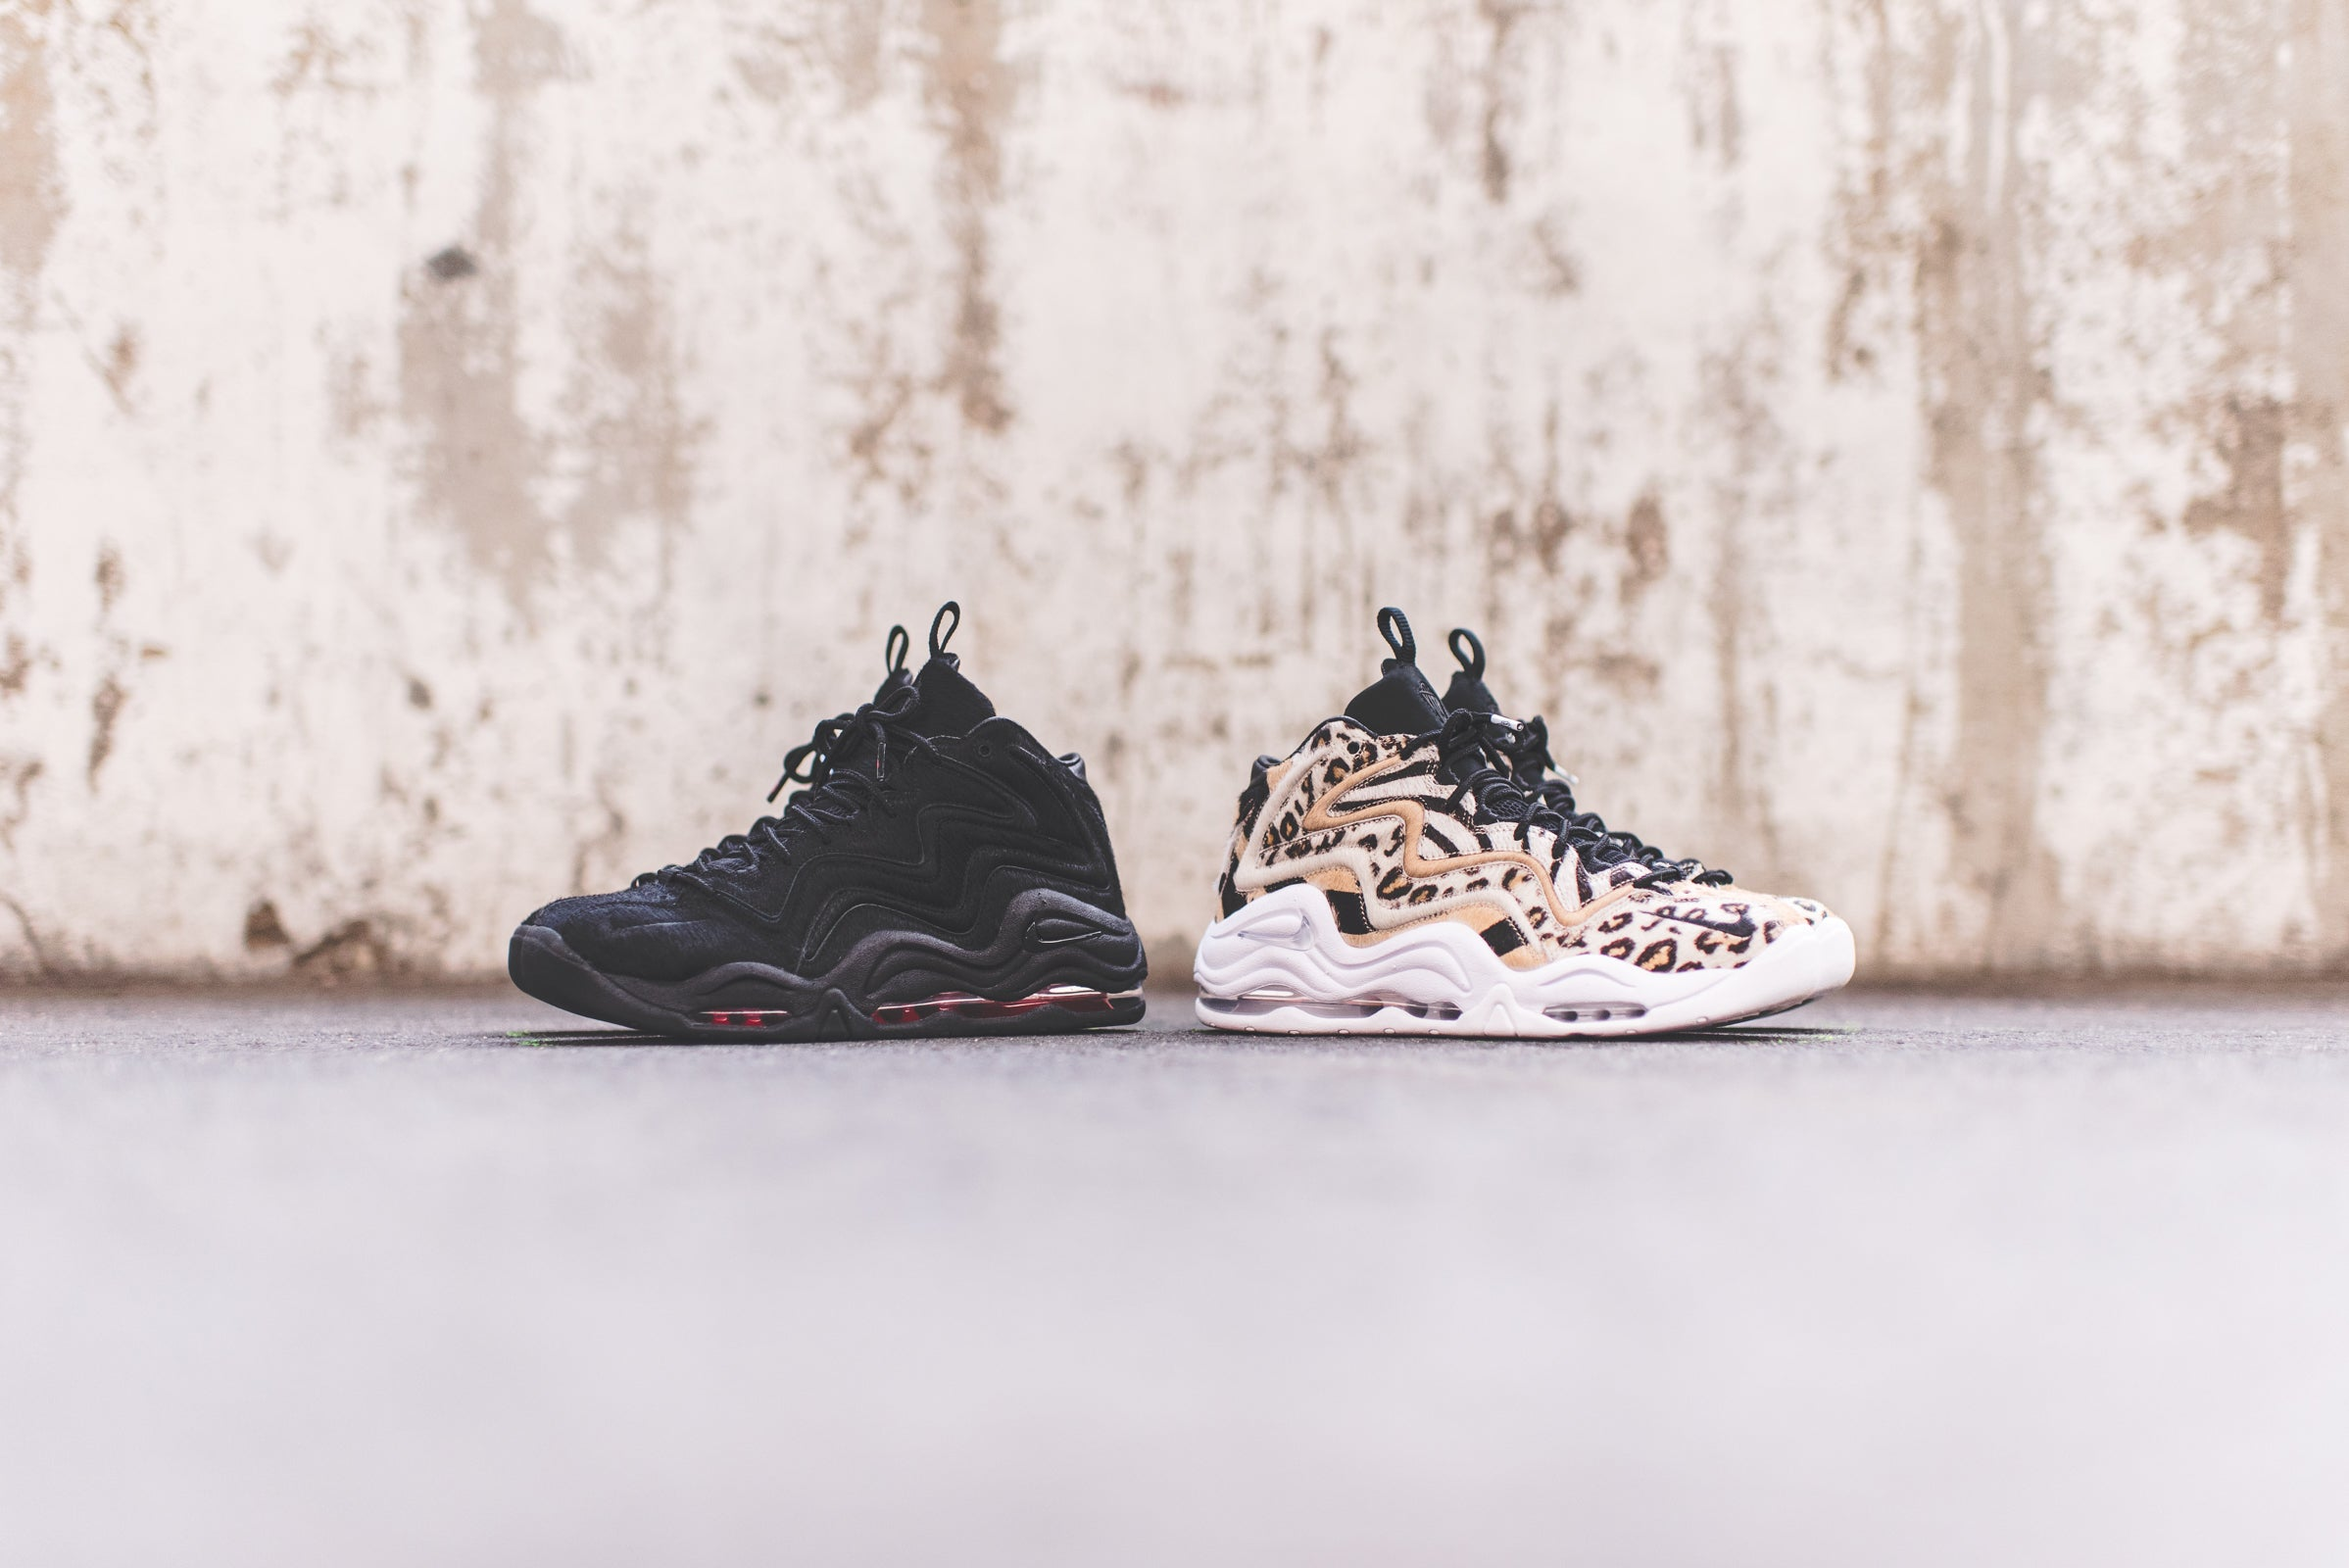 8da673c575f Kith x Nike Air Pippen 1 Collection. October 03